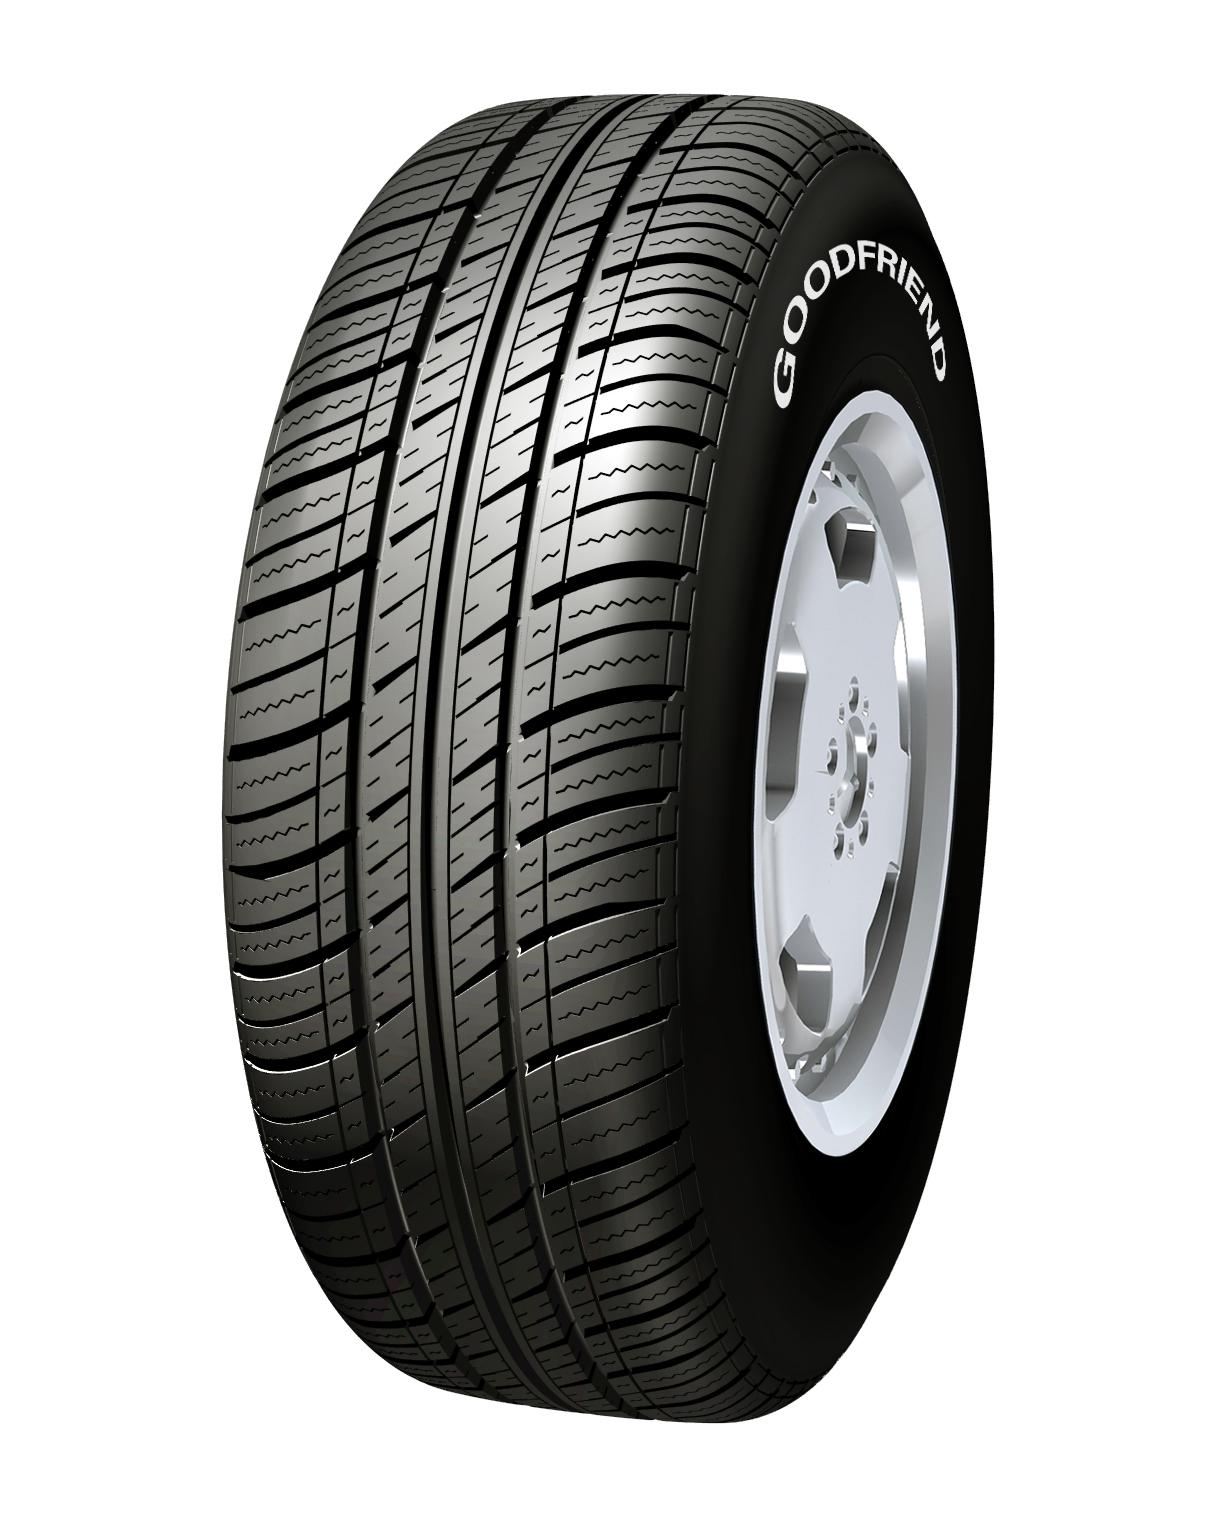 tire 225 85r16 tyres 185r13 165/70R14 radial tyre 165r13c